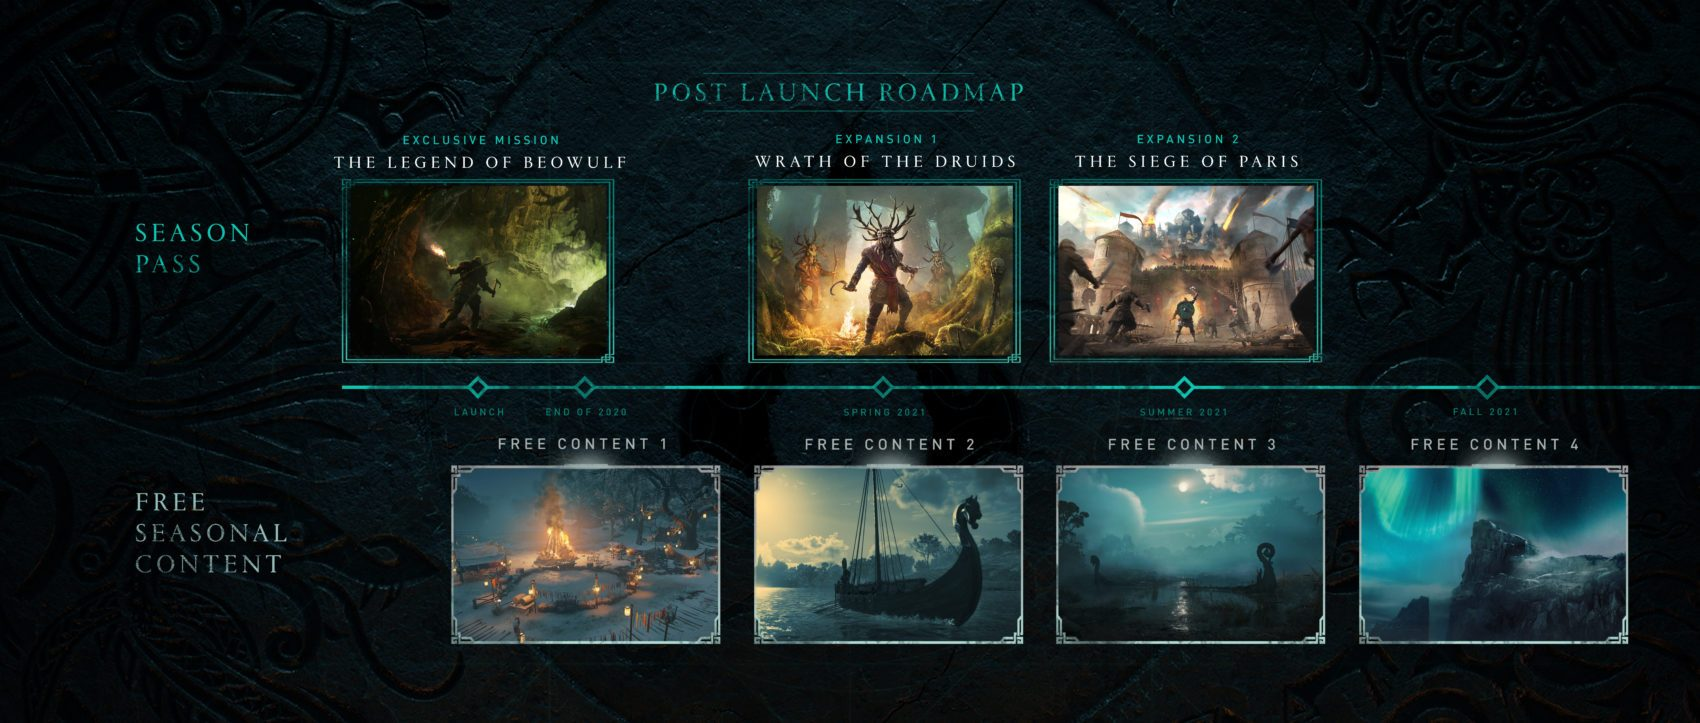 Assassin S Creed Valhalla Post Launch Dlc Includes Two Expansions Free Content Mxdwn Games